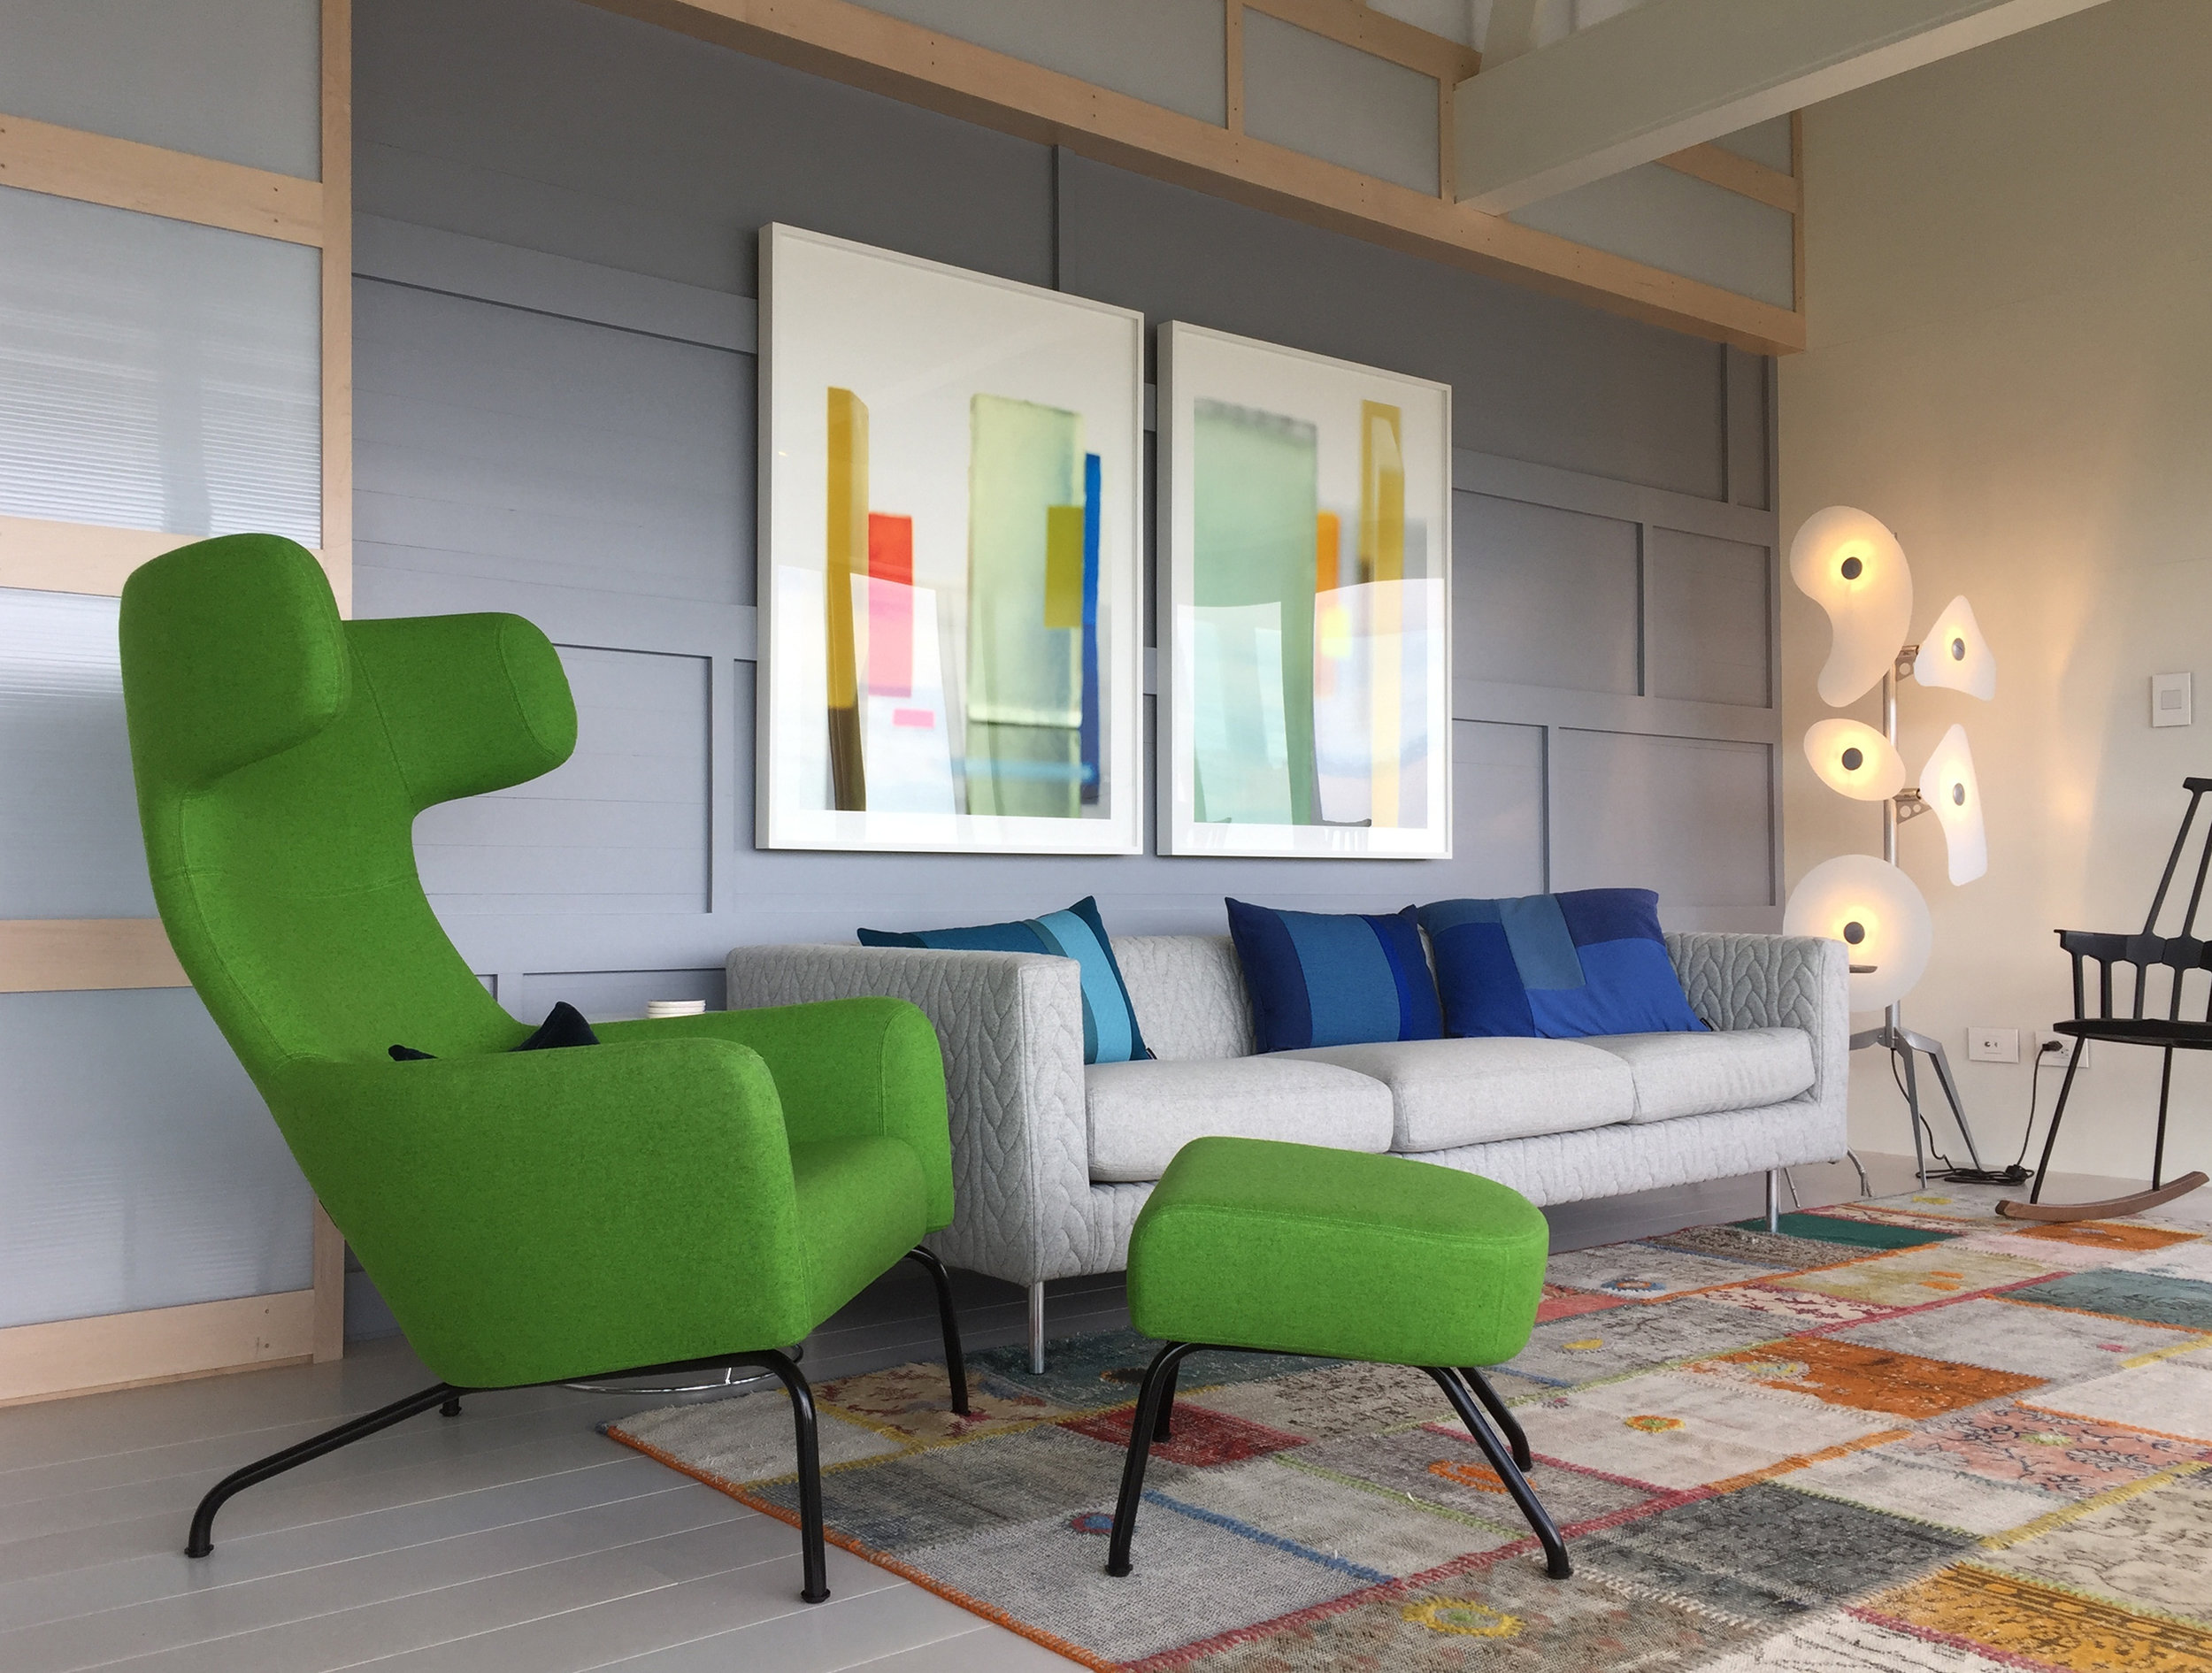 The living room is furnished with contemporary pieces in bright colors. (Photograph by Chris Becker)